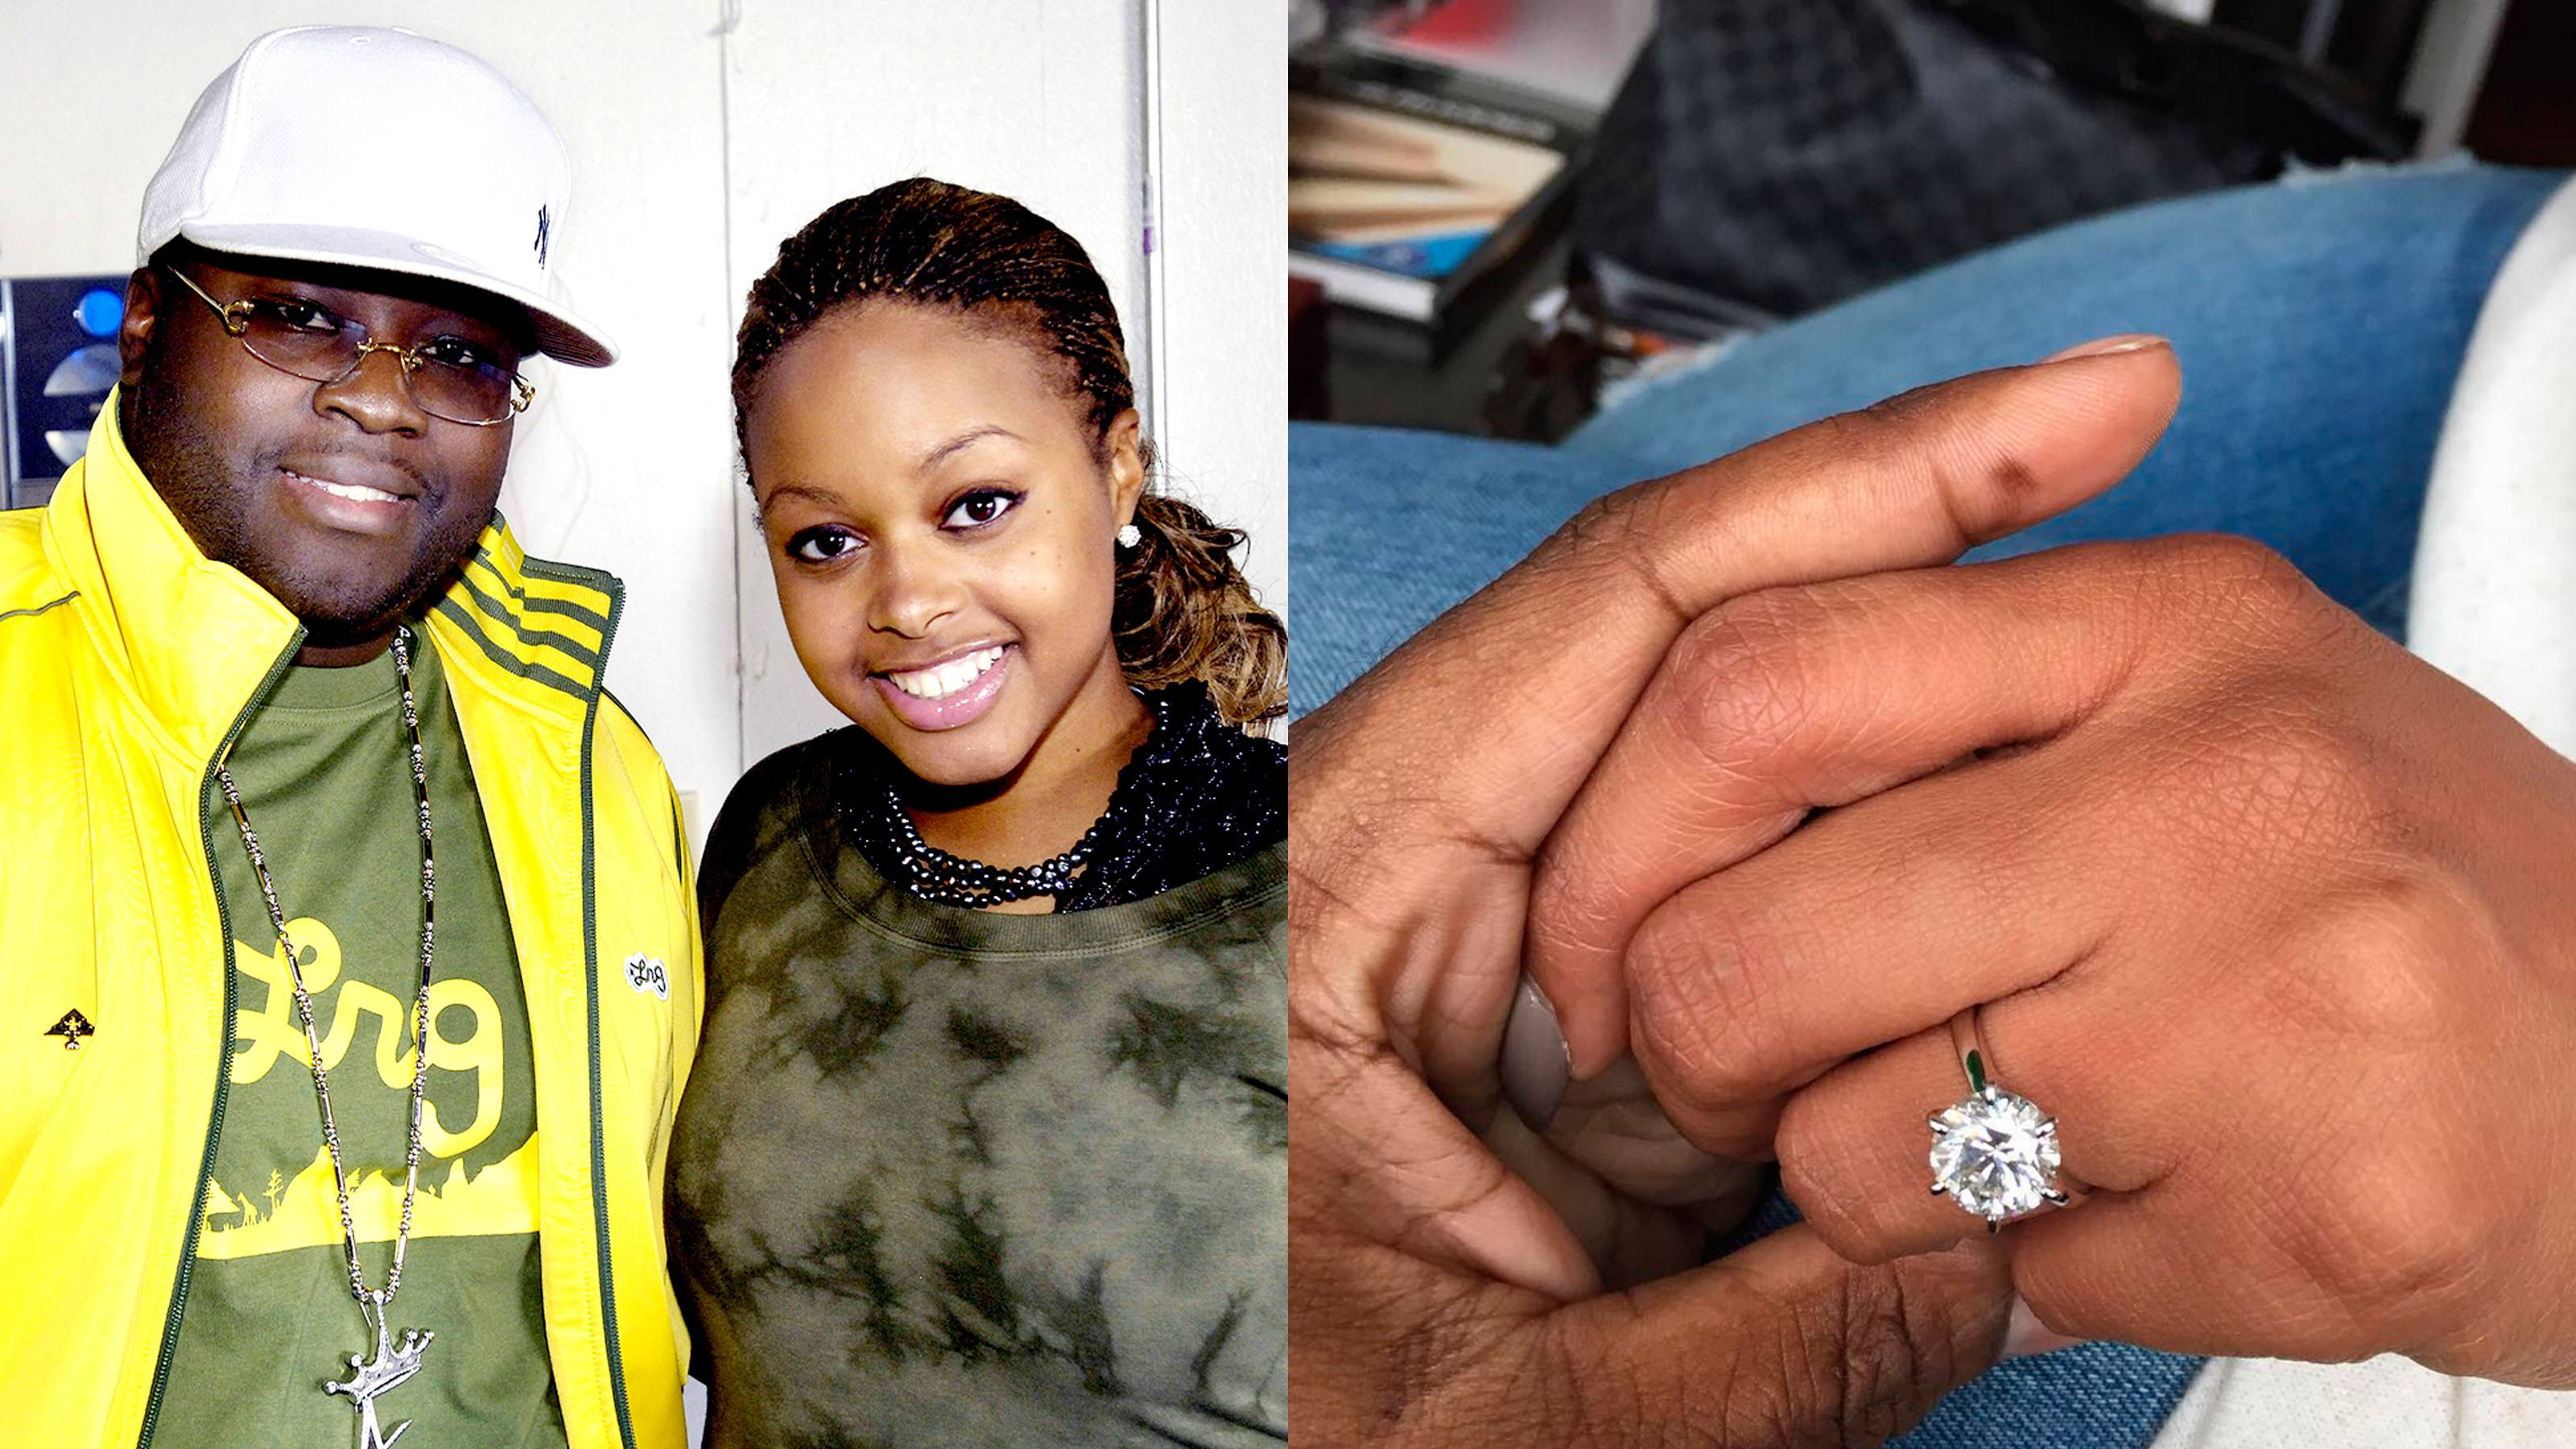 """Chrisette Michele - It's a match made in music heaven! The singer said """"yes"""" after her longtime manager, Doug """"Biggs"""" Ellison, got down on one knee on the rooftop of New York City's Jungle City recording studio in late October. Her radiant, oval-shaped diamond is a classic beauty, sitting atop a plain platinum band.   (Photos from Left: Frank Mullen/WireImage, Doug Ellison via Instagram)"""